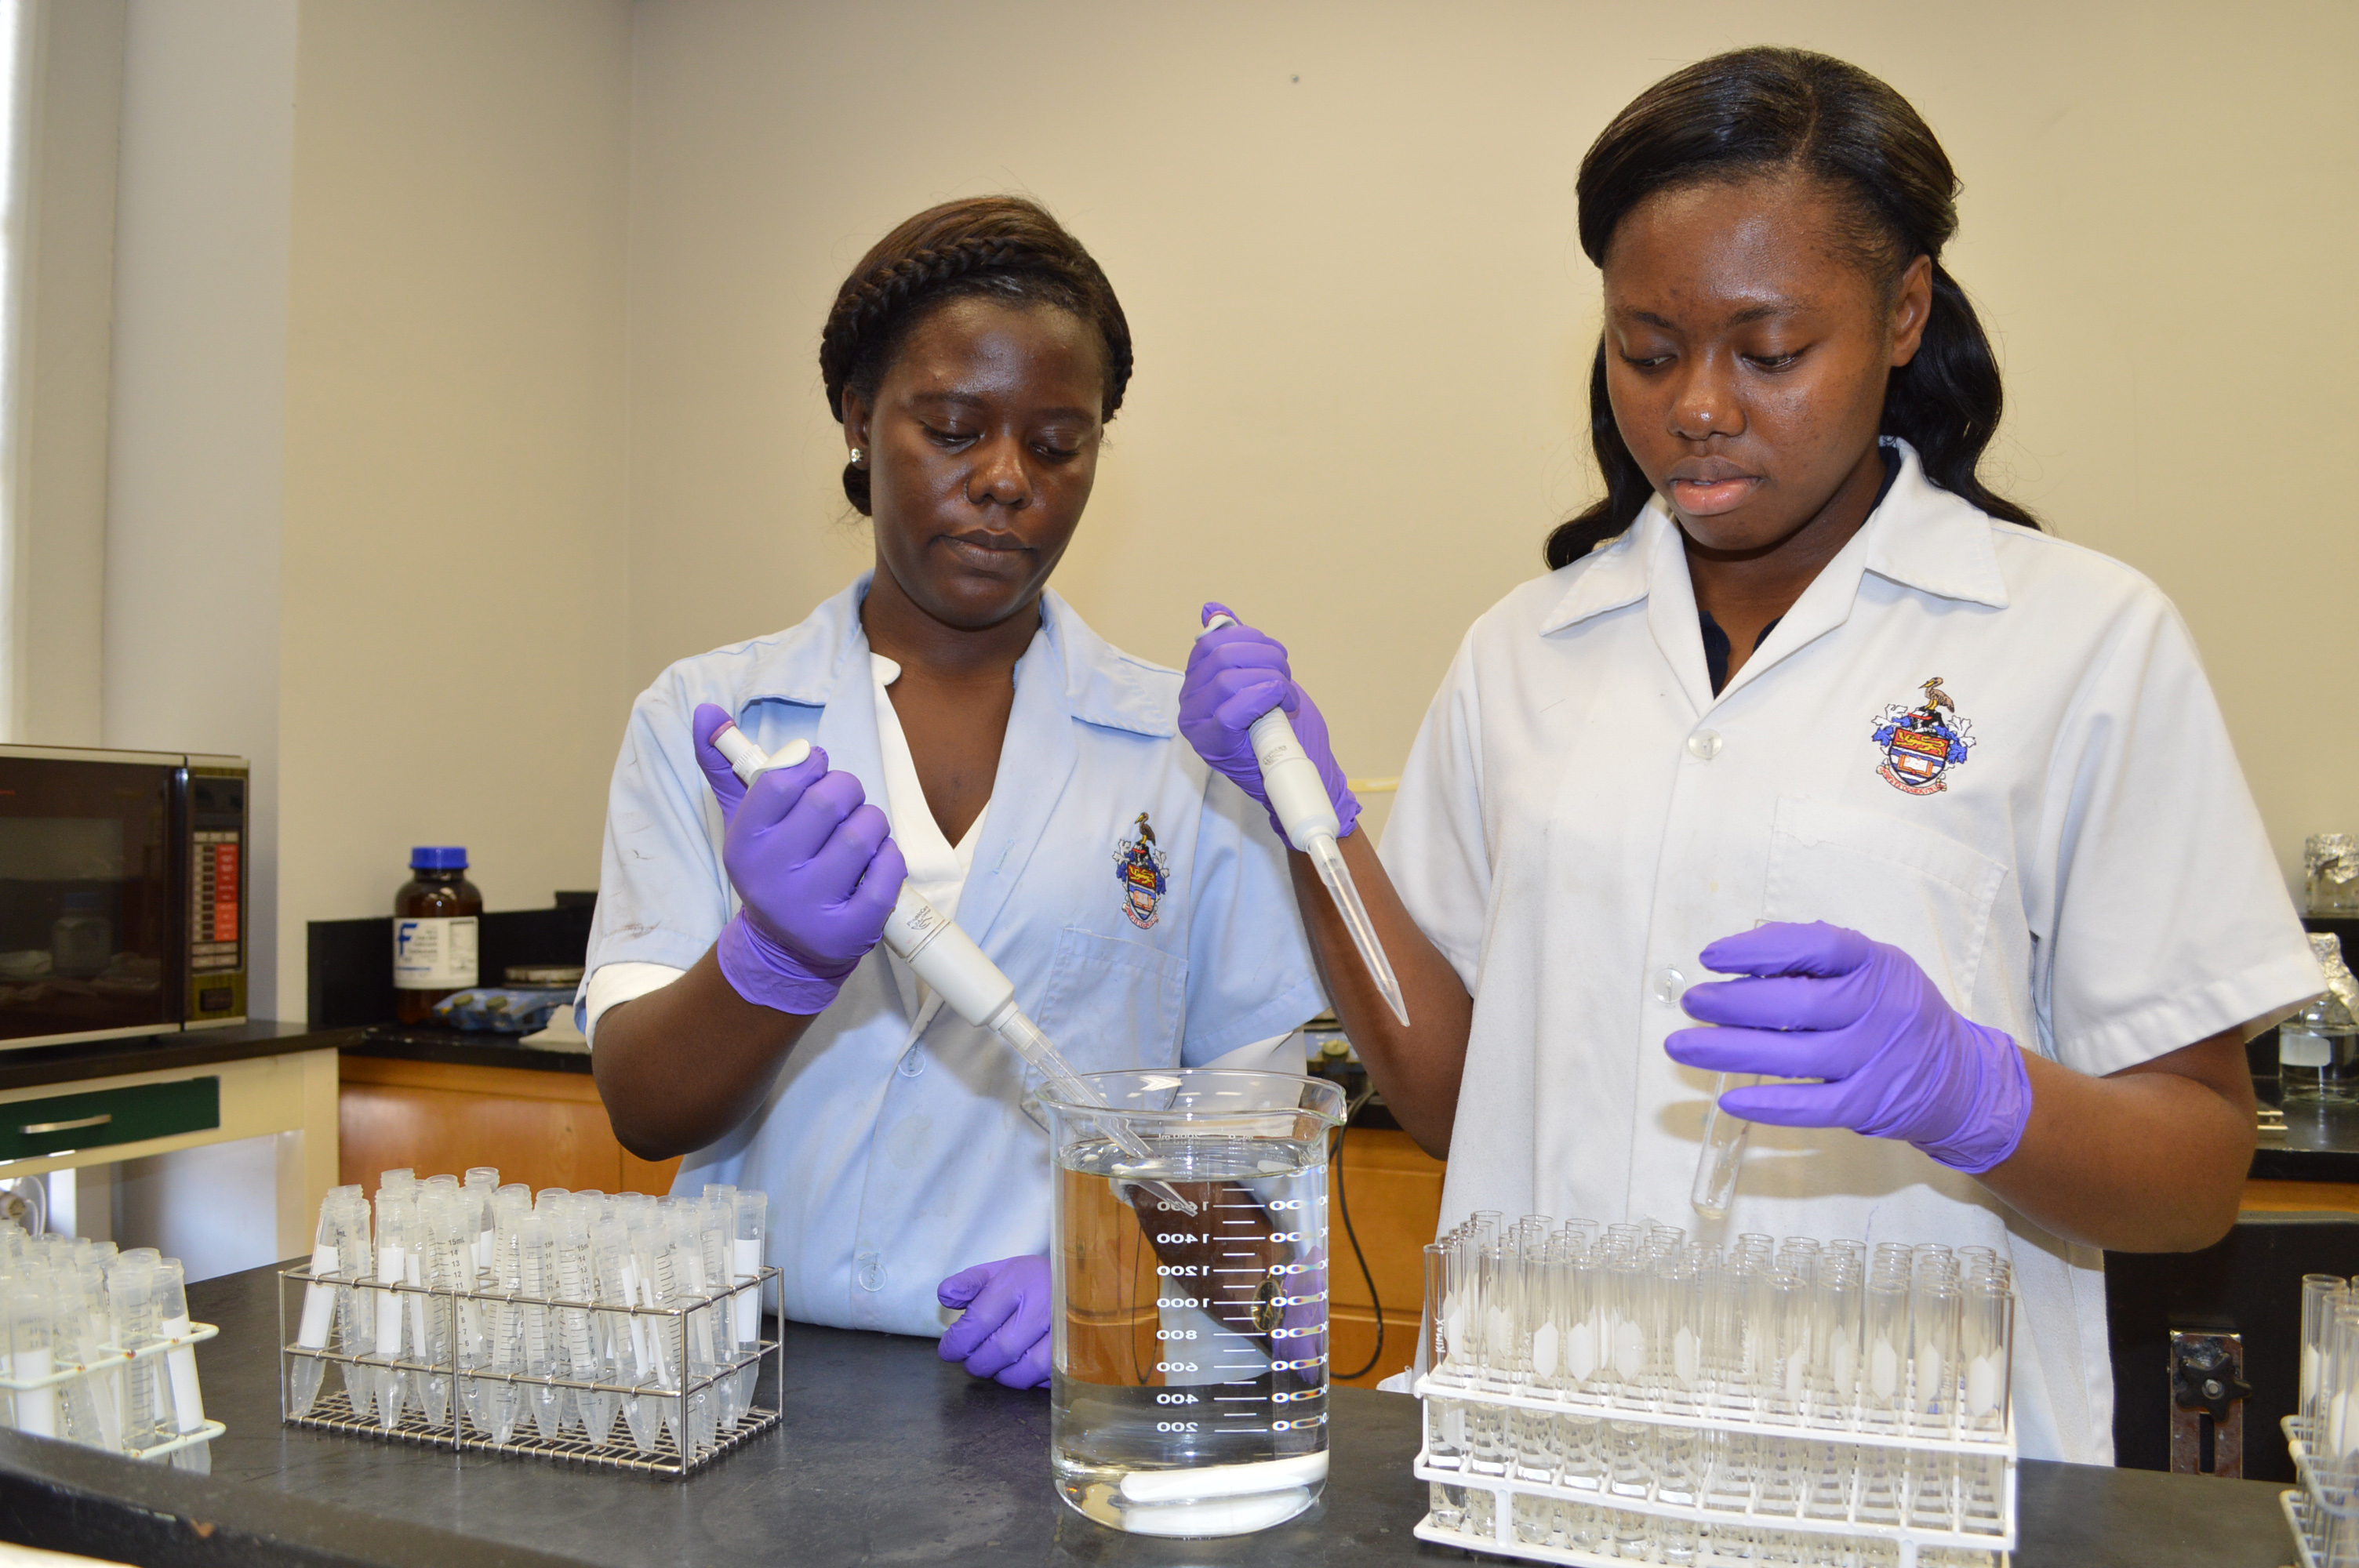 Jamaican students conduct food science research at LSU